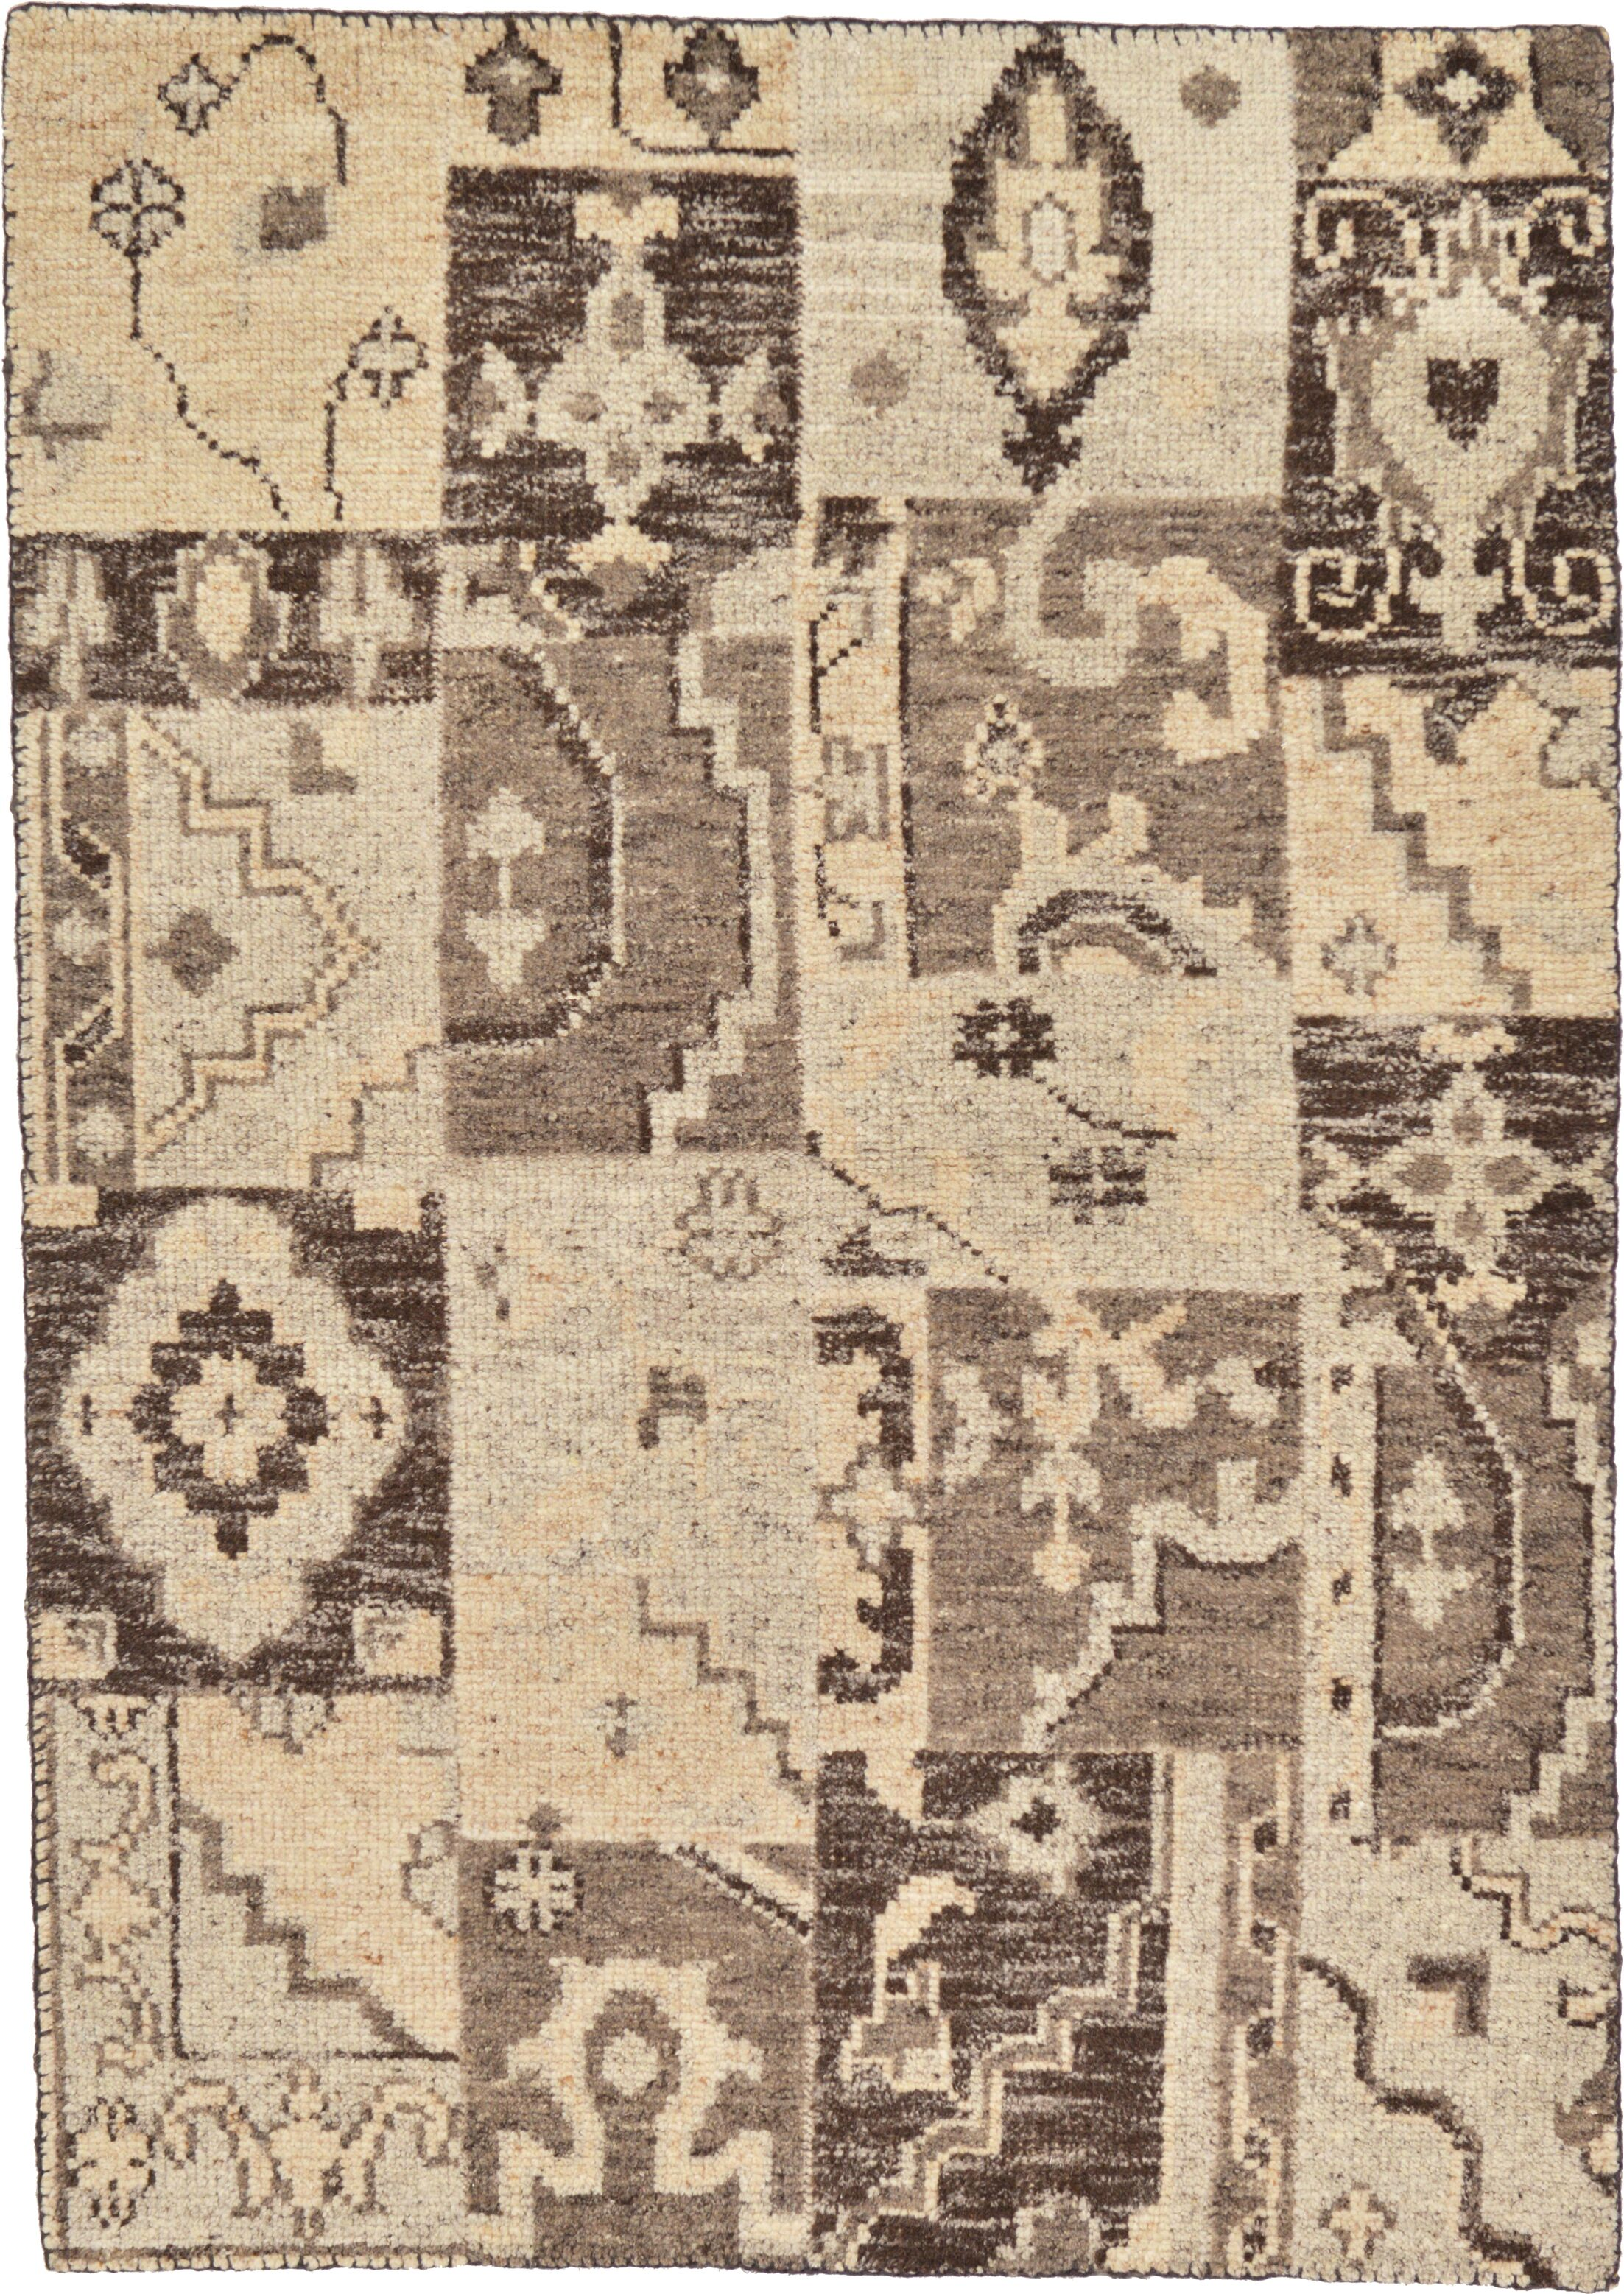 One-of-a-Kind Orford Hand-Knotted Wool Beige/Brown Area Rug